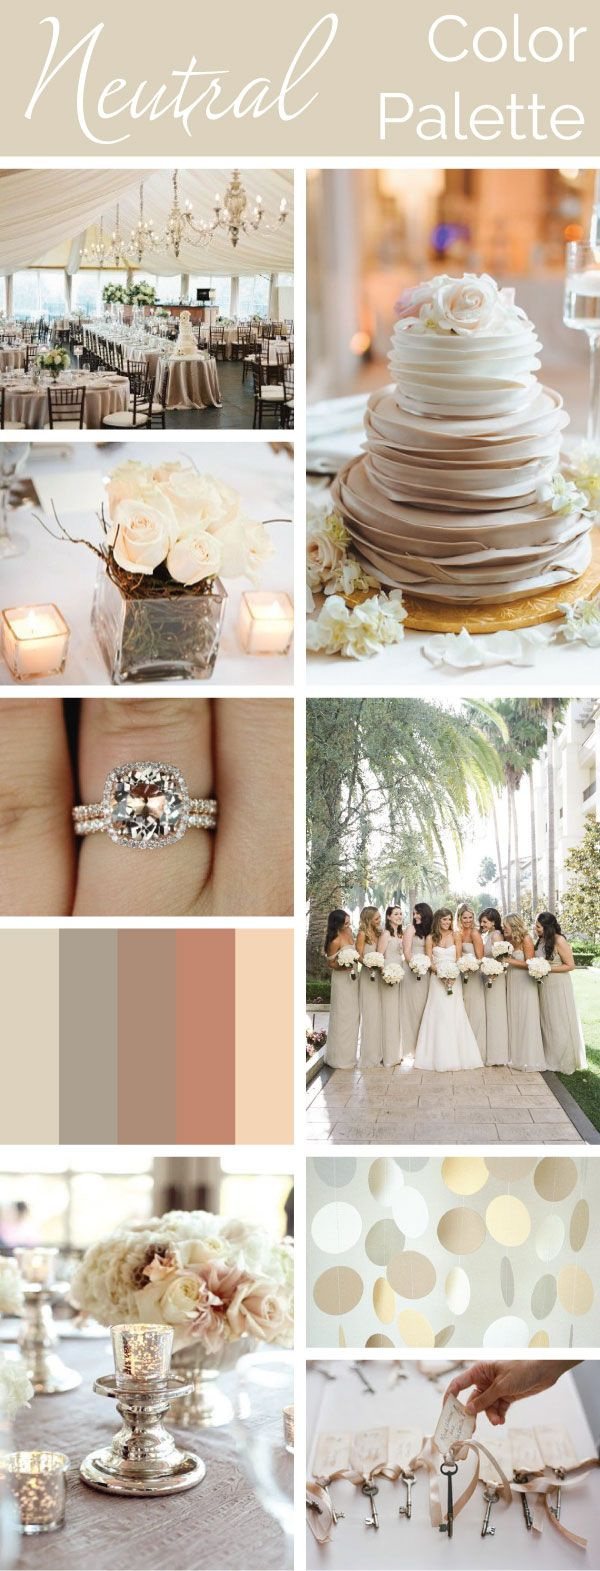 Neutral Color Palette: Simple, Elegant, Versatile. | Linentablecloth | neutral wedding | www.endorajewellery.etsy.com